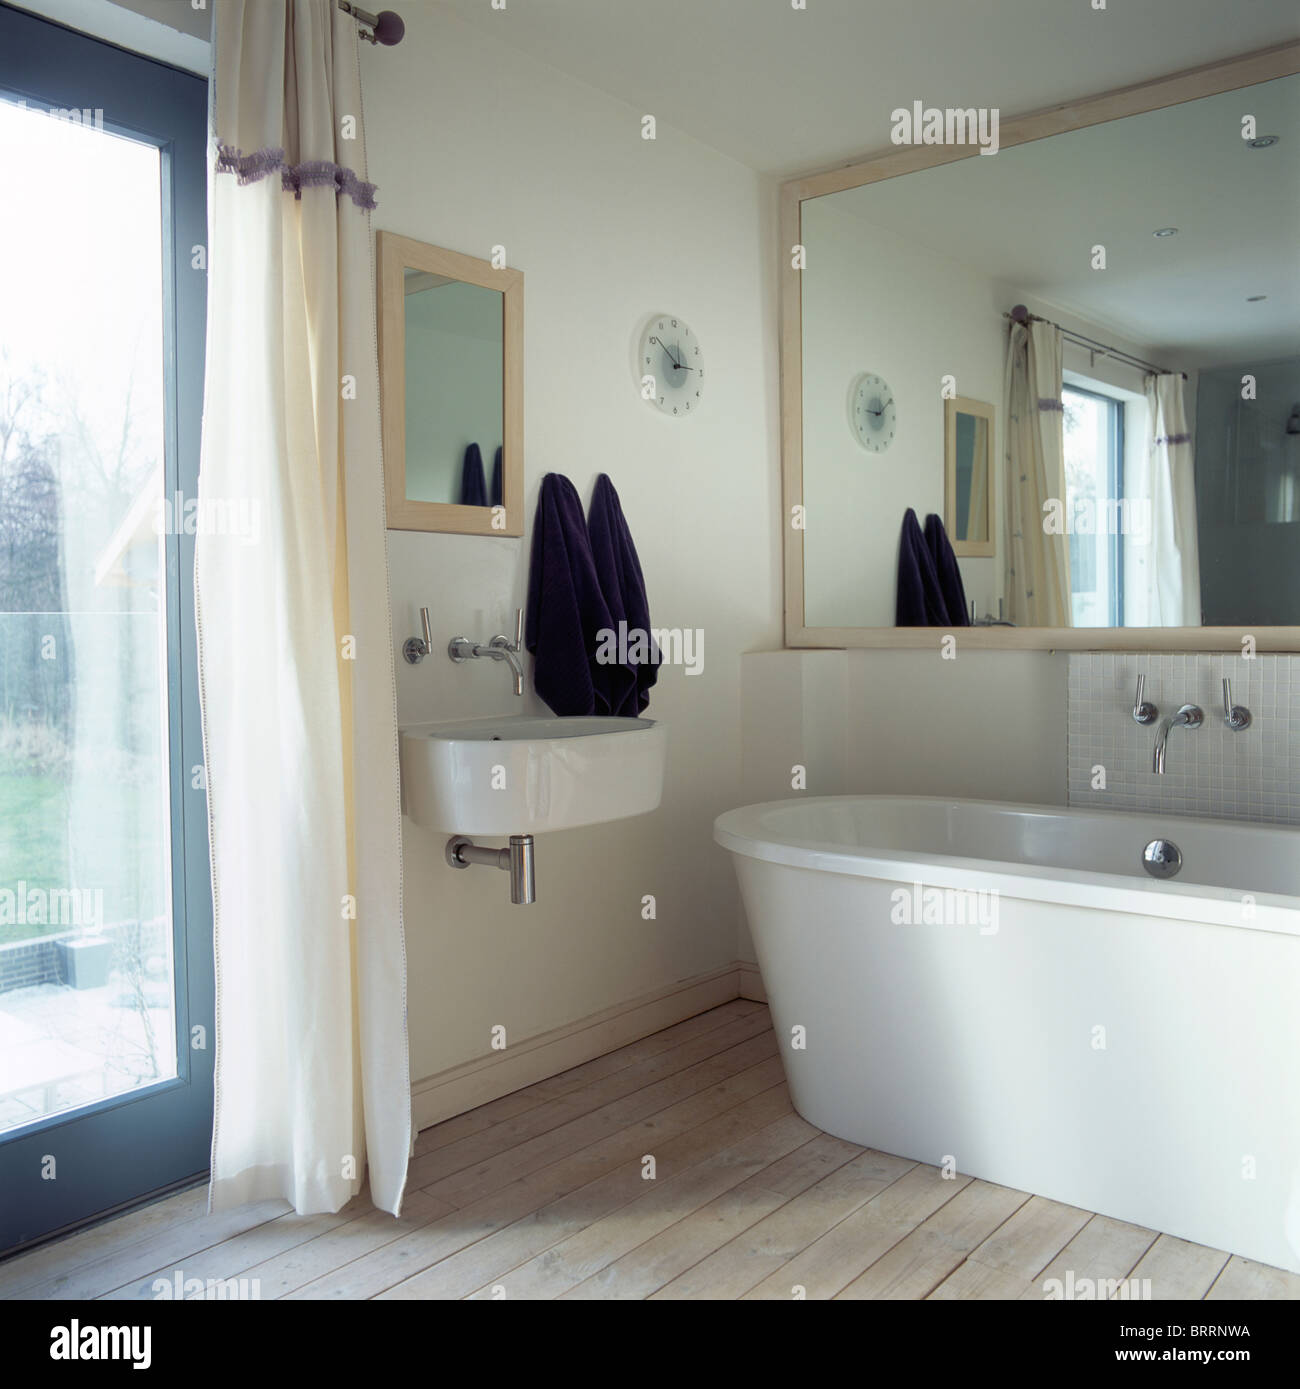 Large Mirror Above Modern Bath In Small Bathroom With Wall Mounted Basin Beside Glass Door White Curtain